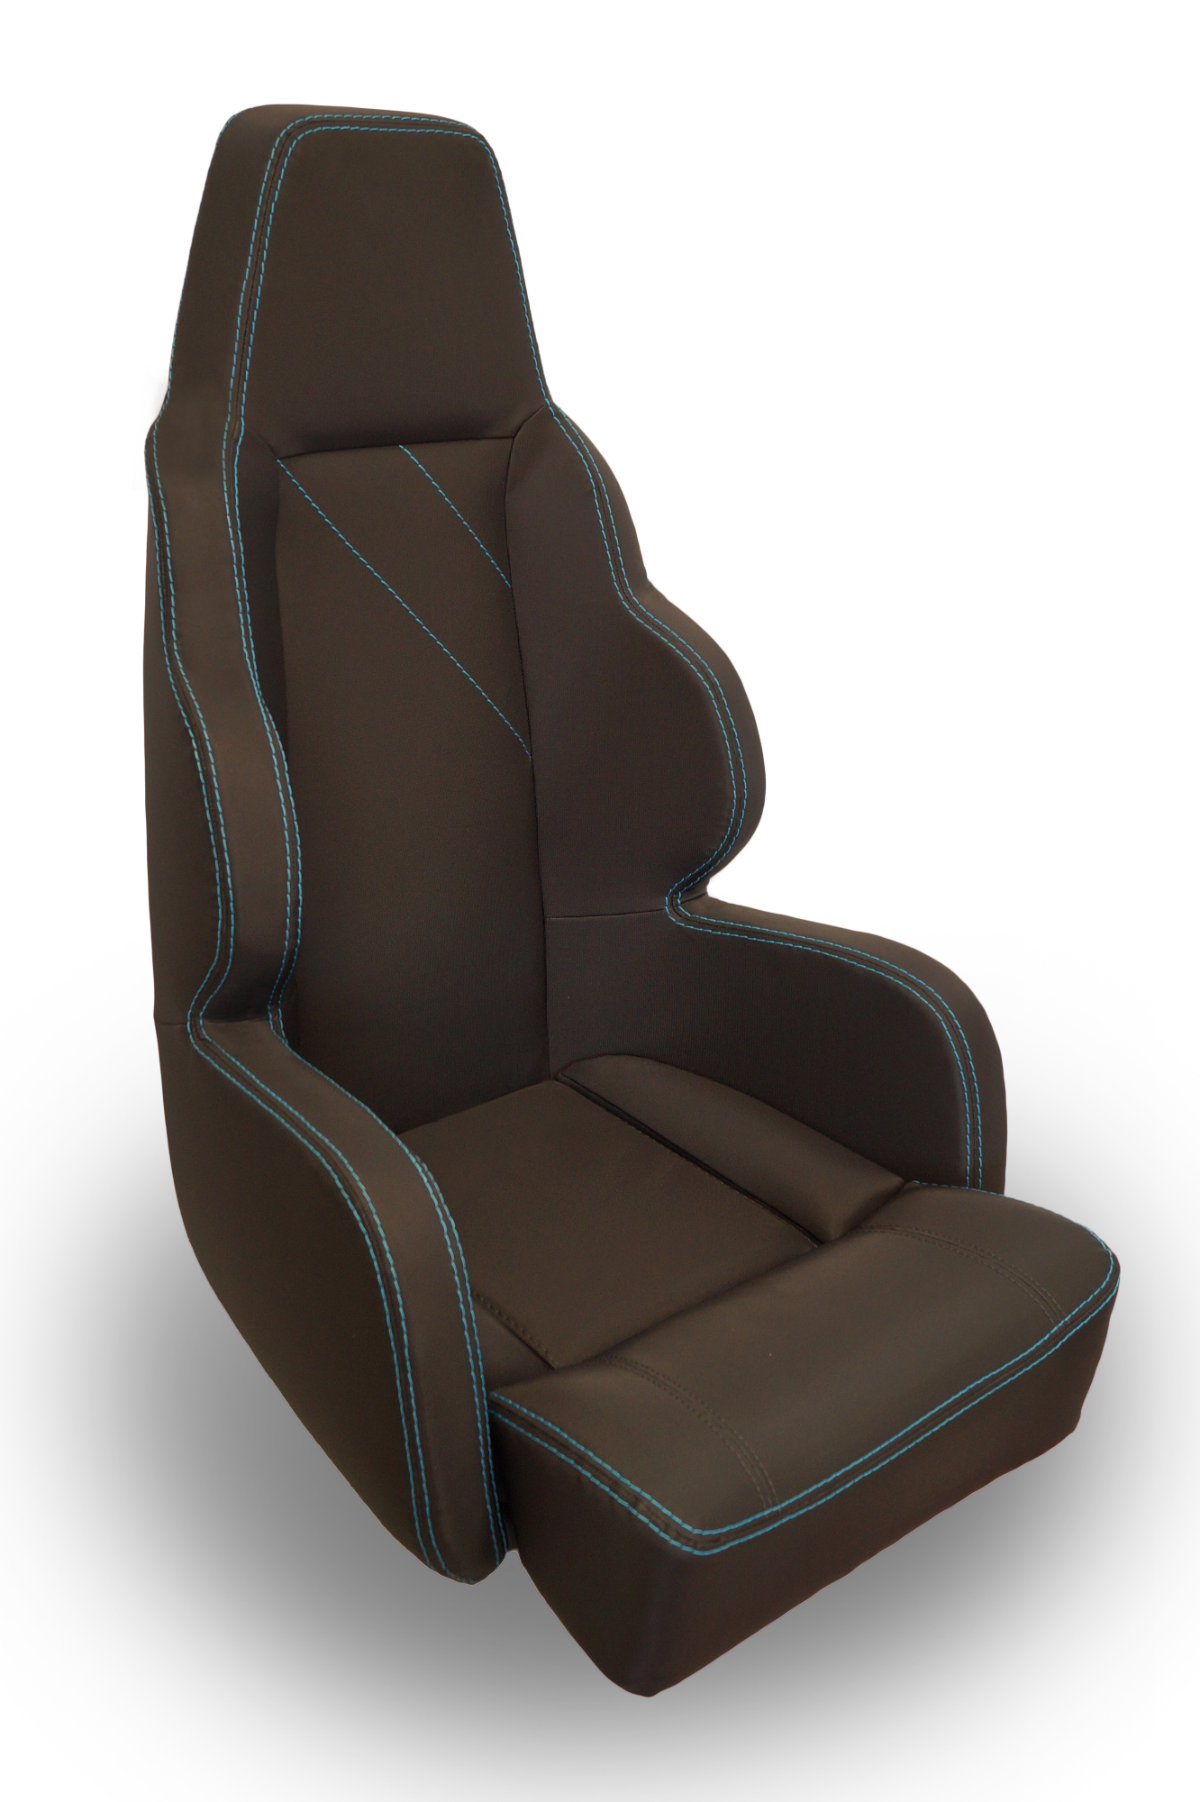 Boat Captain Chair Seat Covers - Velcromag